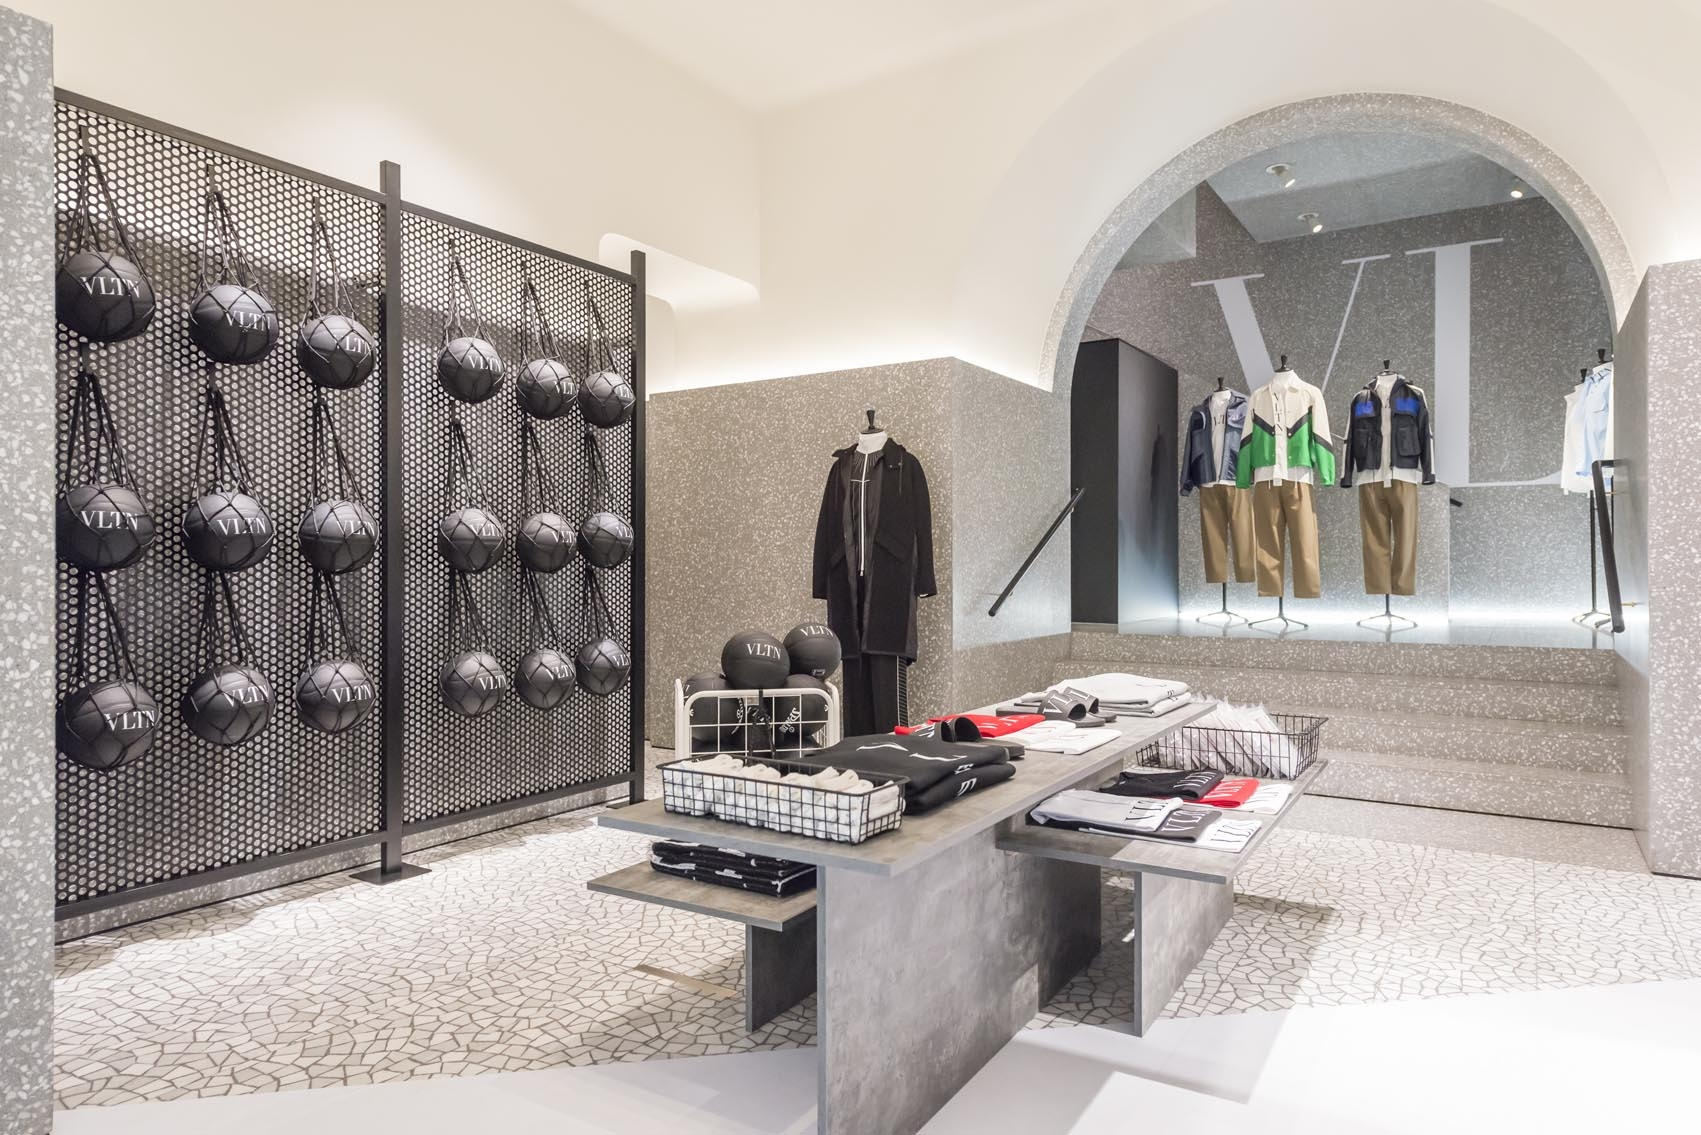 florence-vltn-store-installation-at-valentino-tornabuoni-store-3